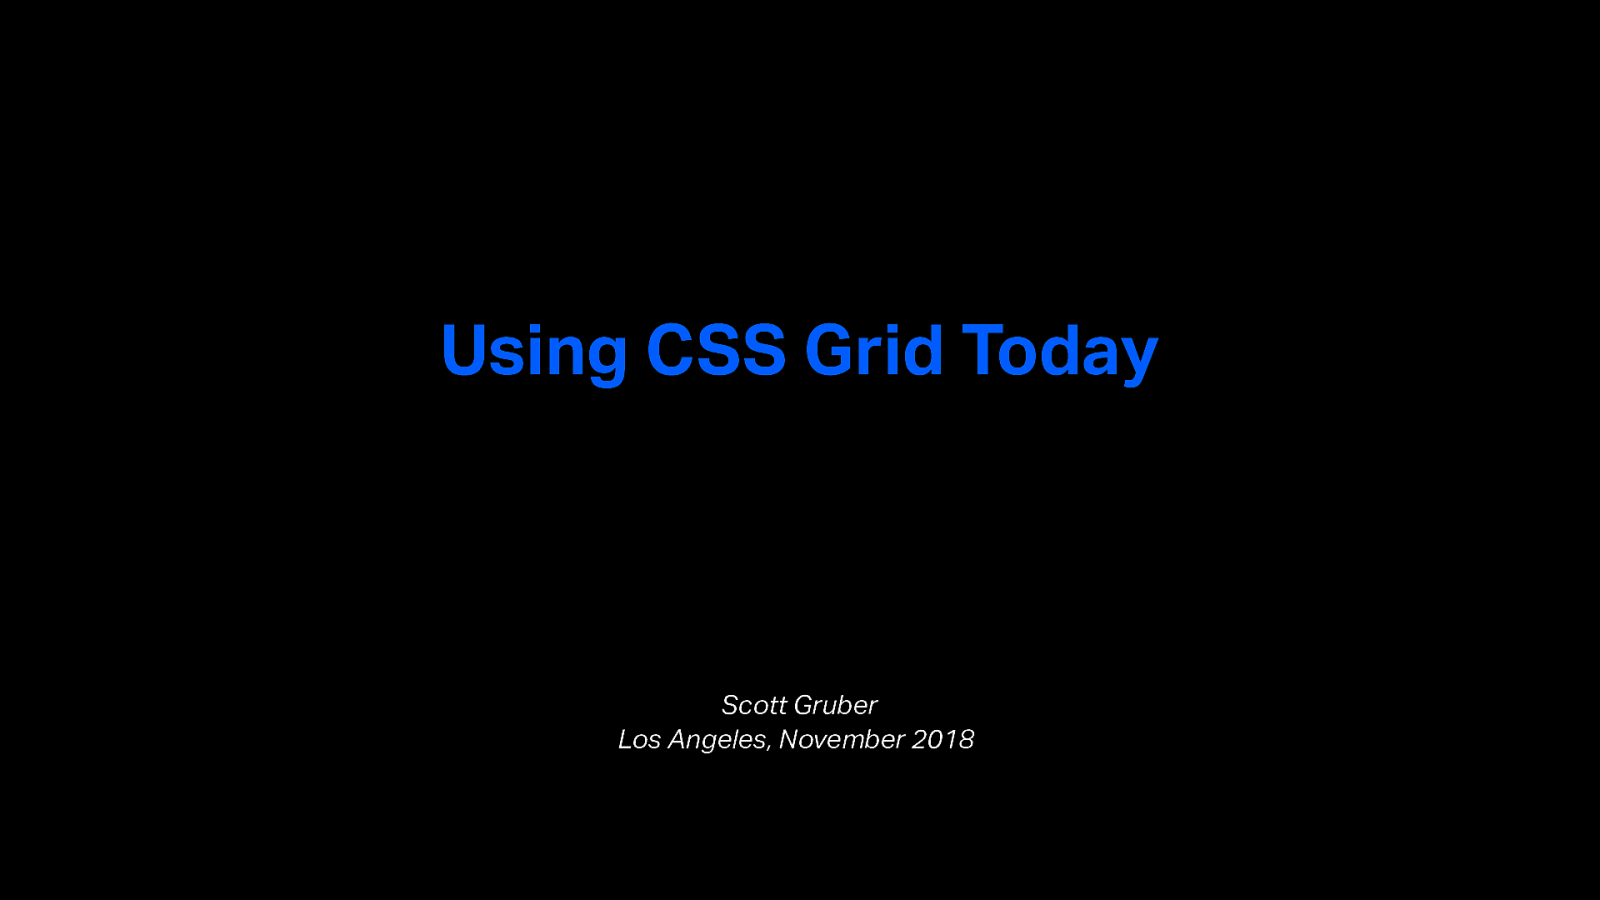 CSS.la Study Group #6: Using CSS Grid Today!